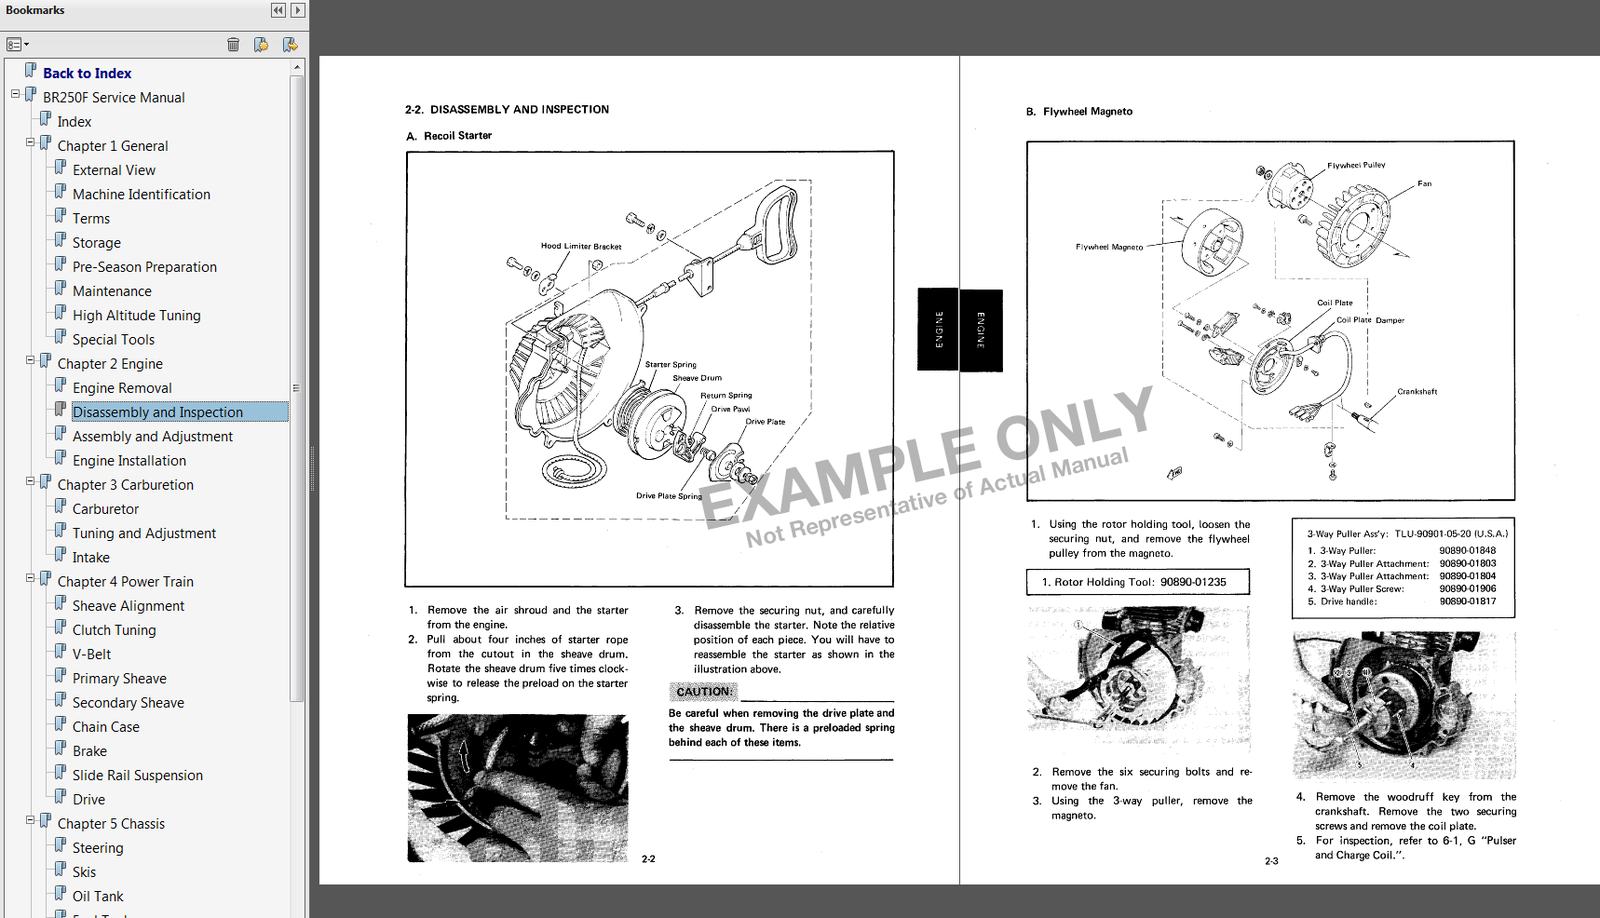 samplewm 1994 1996 yamaha vmax 500 600 snowmobile and 50 similar items Yamaha Wiring Schematic at mr168.co